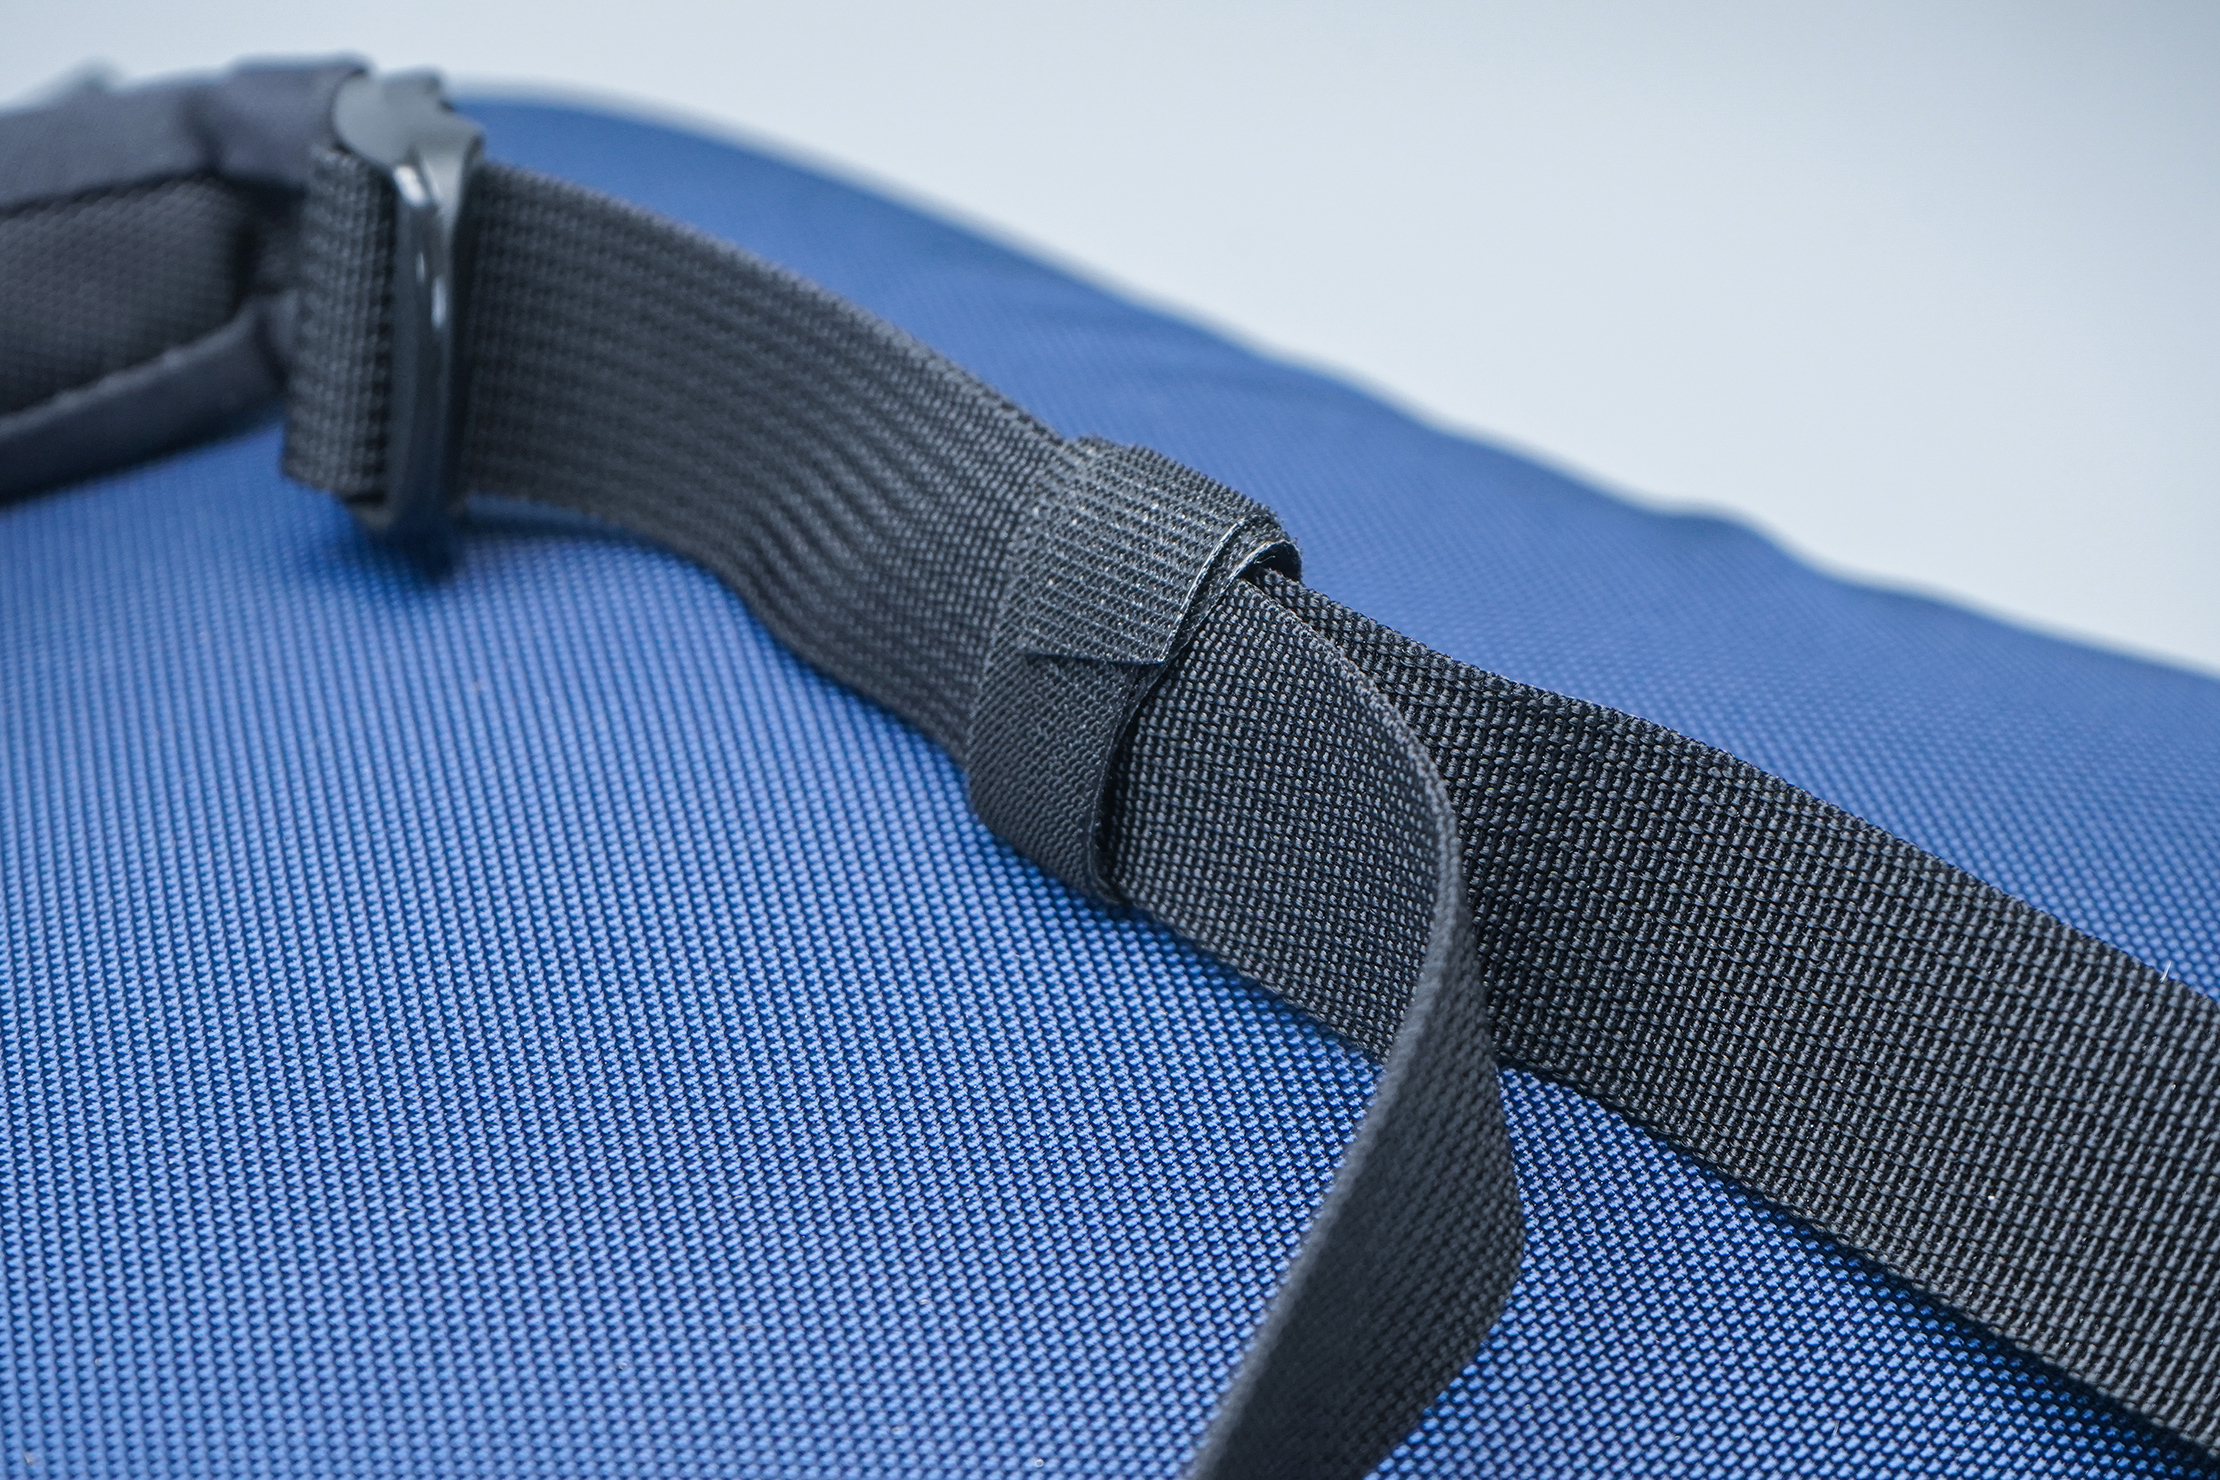 VELCRO Brand Cable Ties on strap